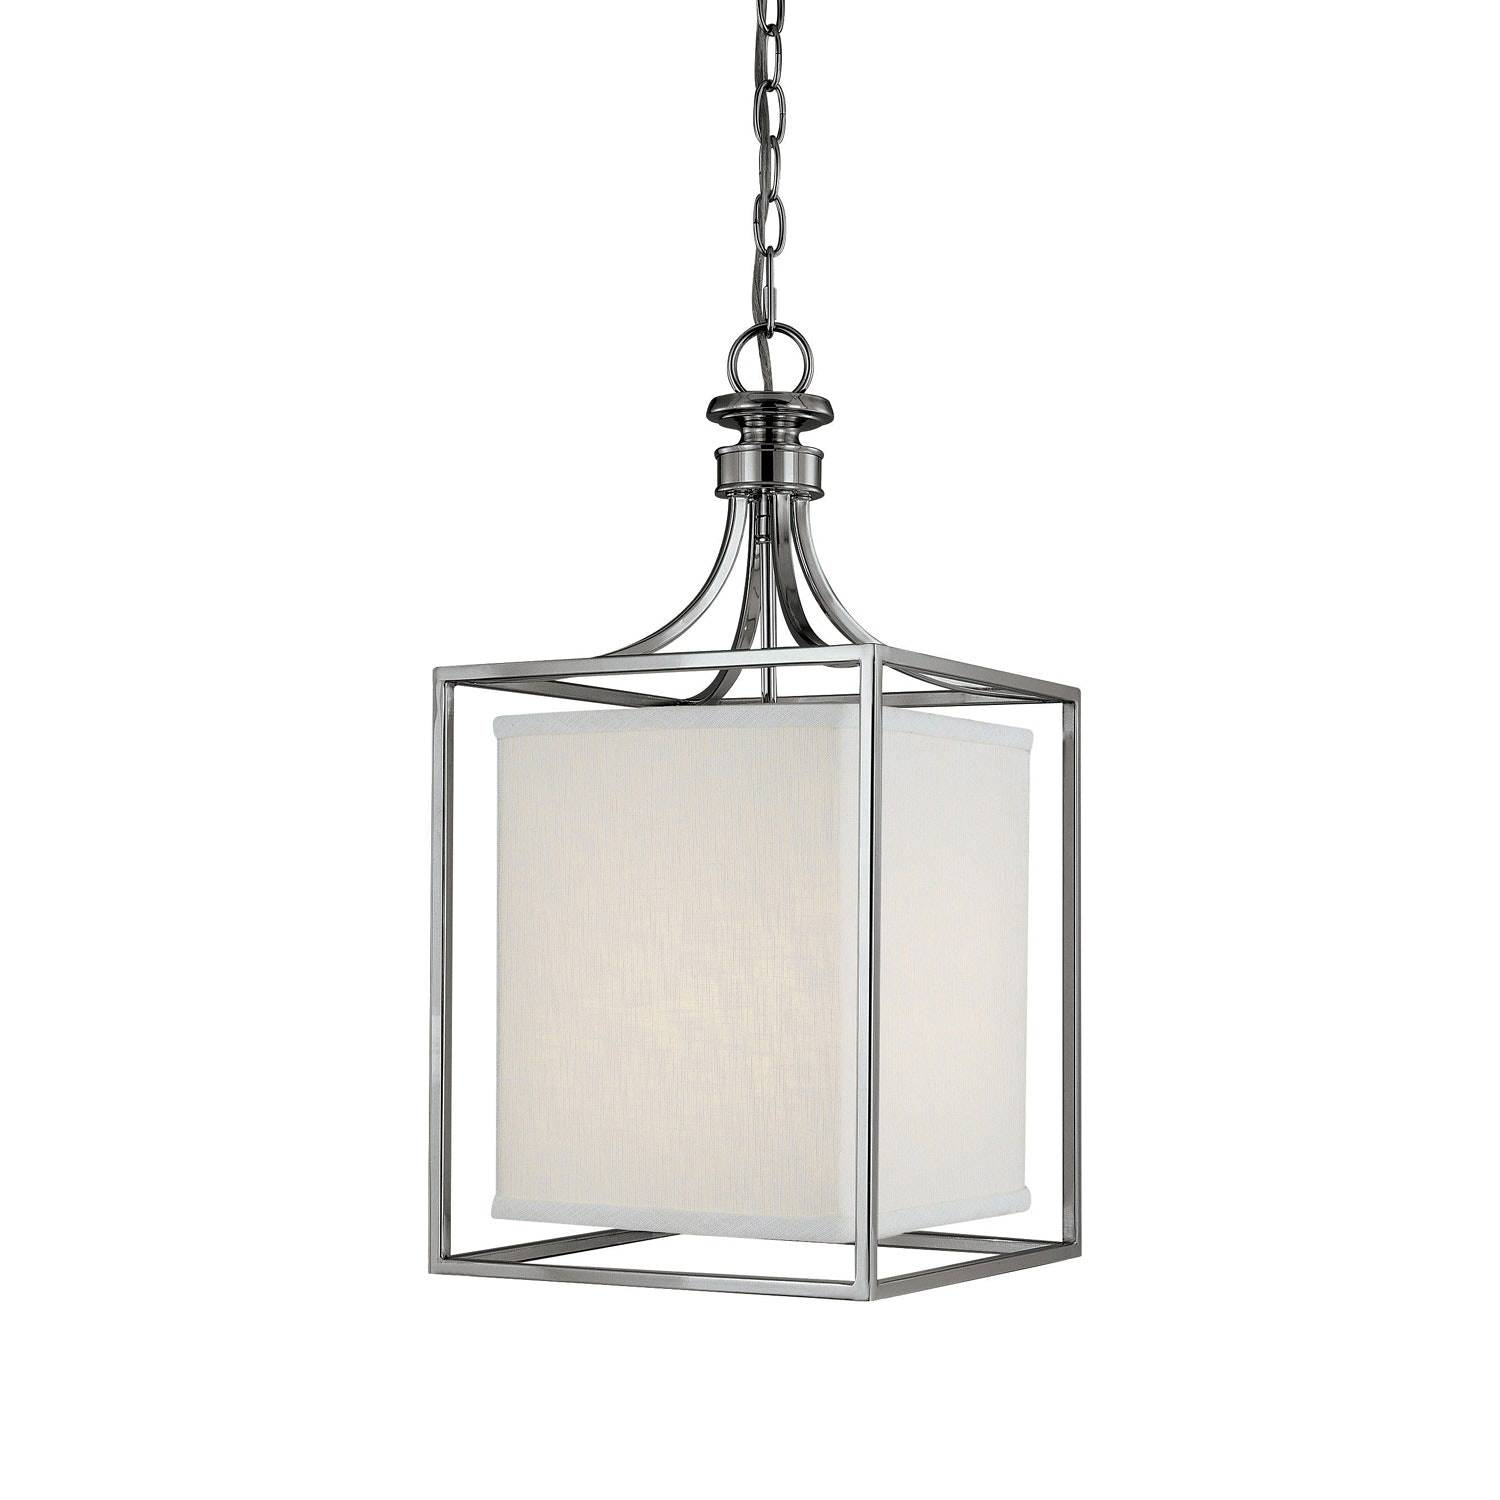 Clearance Pendant Light Ideas Inside Clearance Pendant Lighting (View 2 of 15)